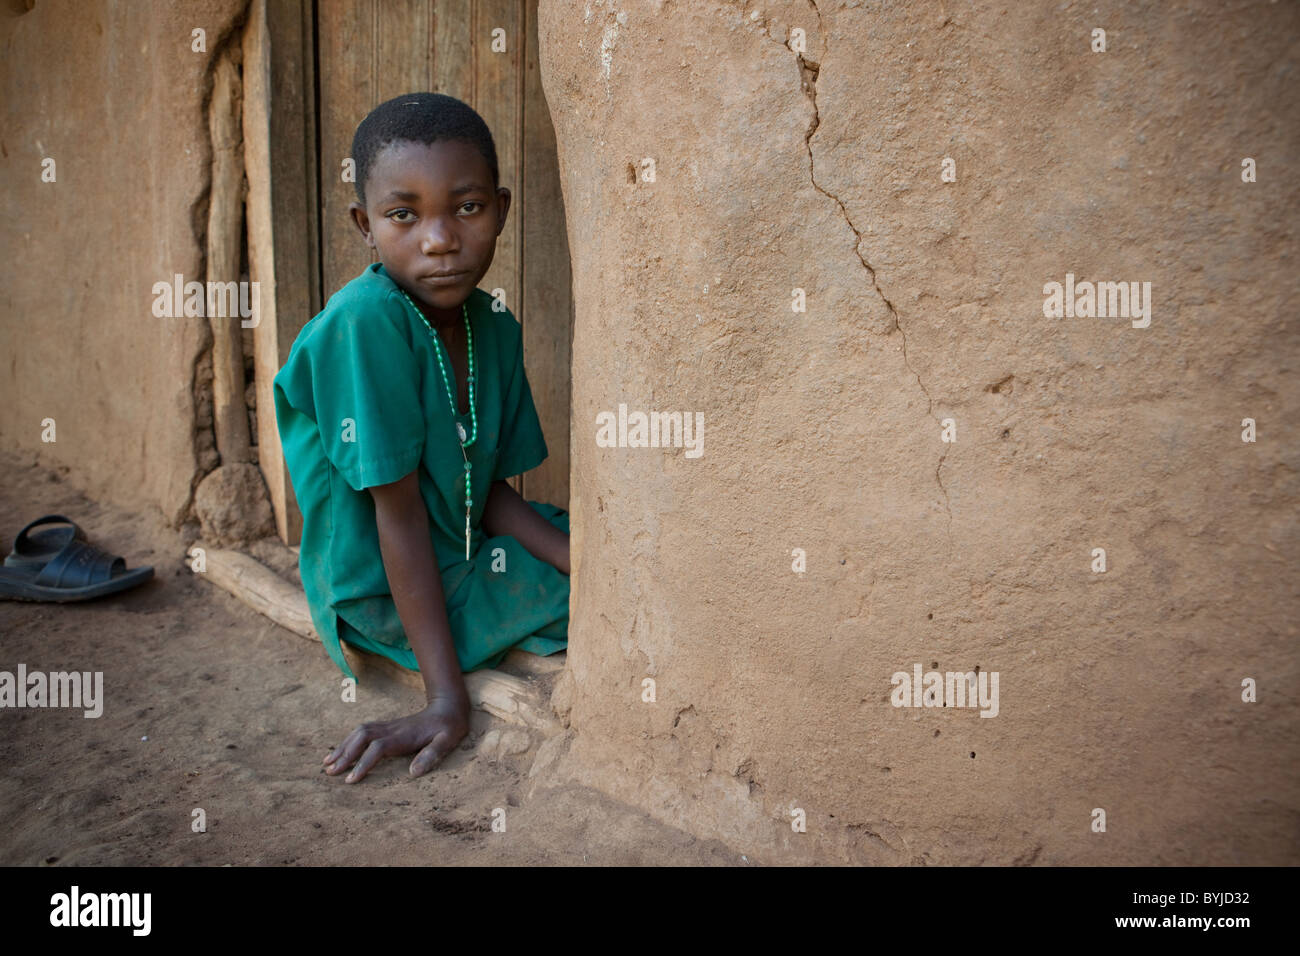 A child sits in the doorway of her home in Masaka Uganda - Stock Image